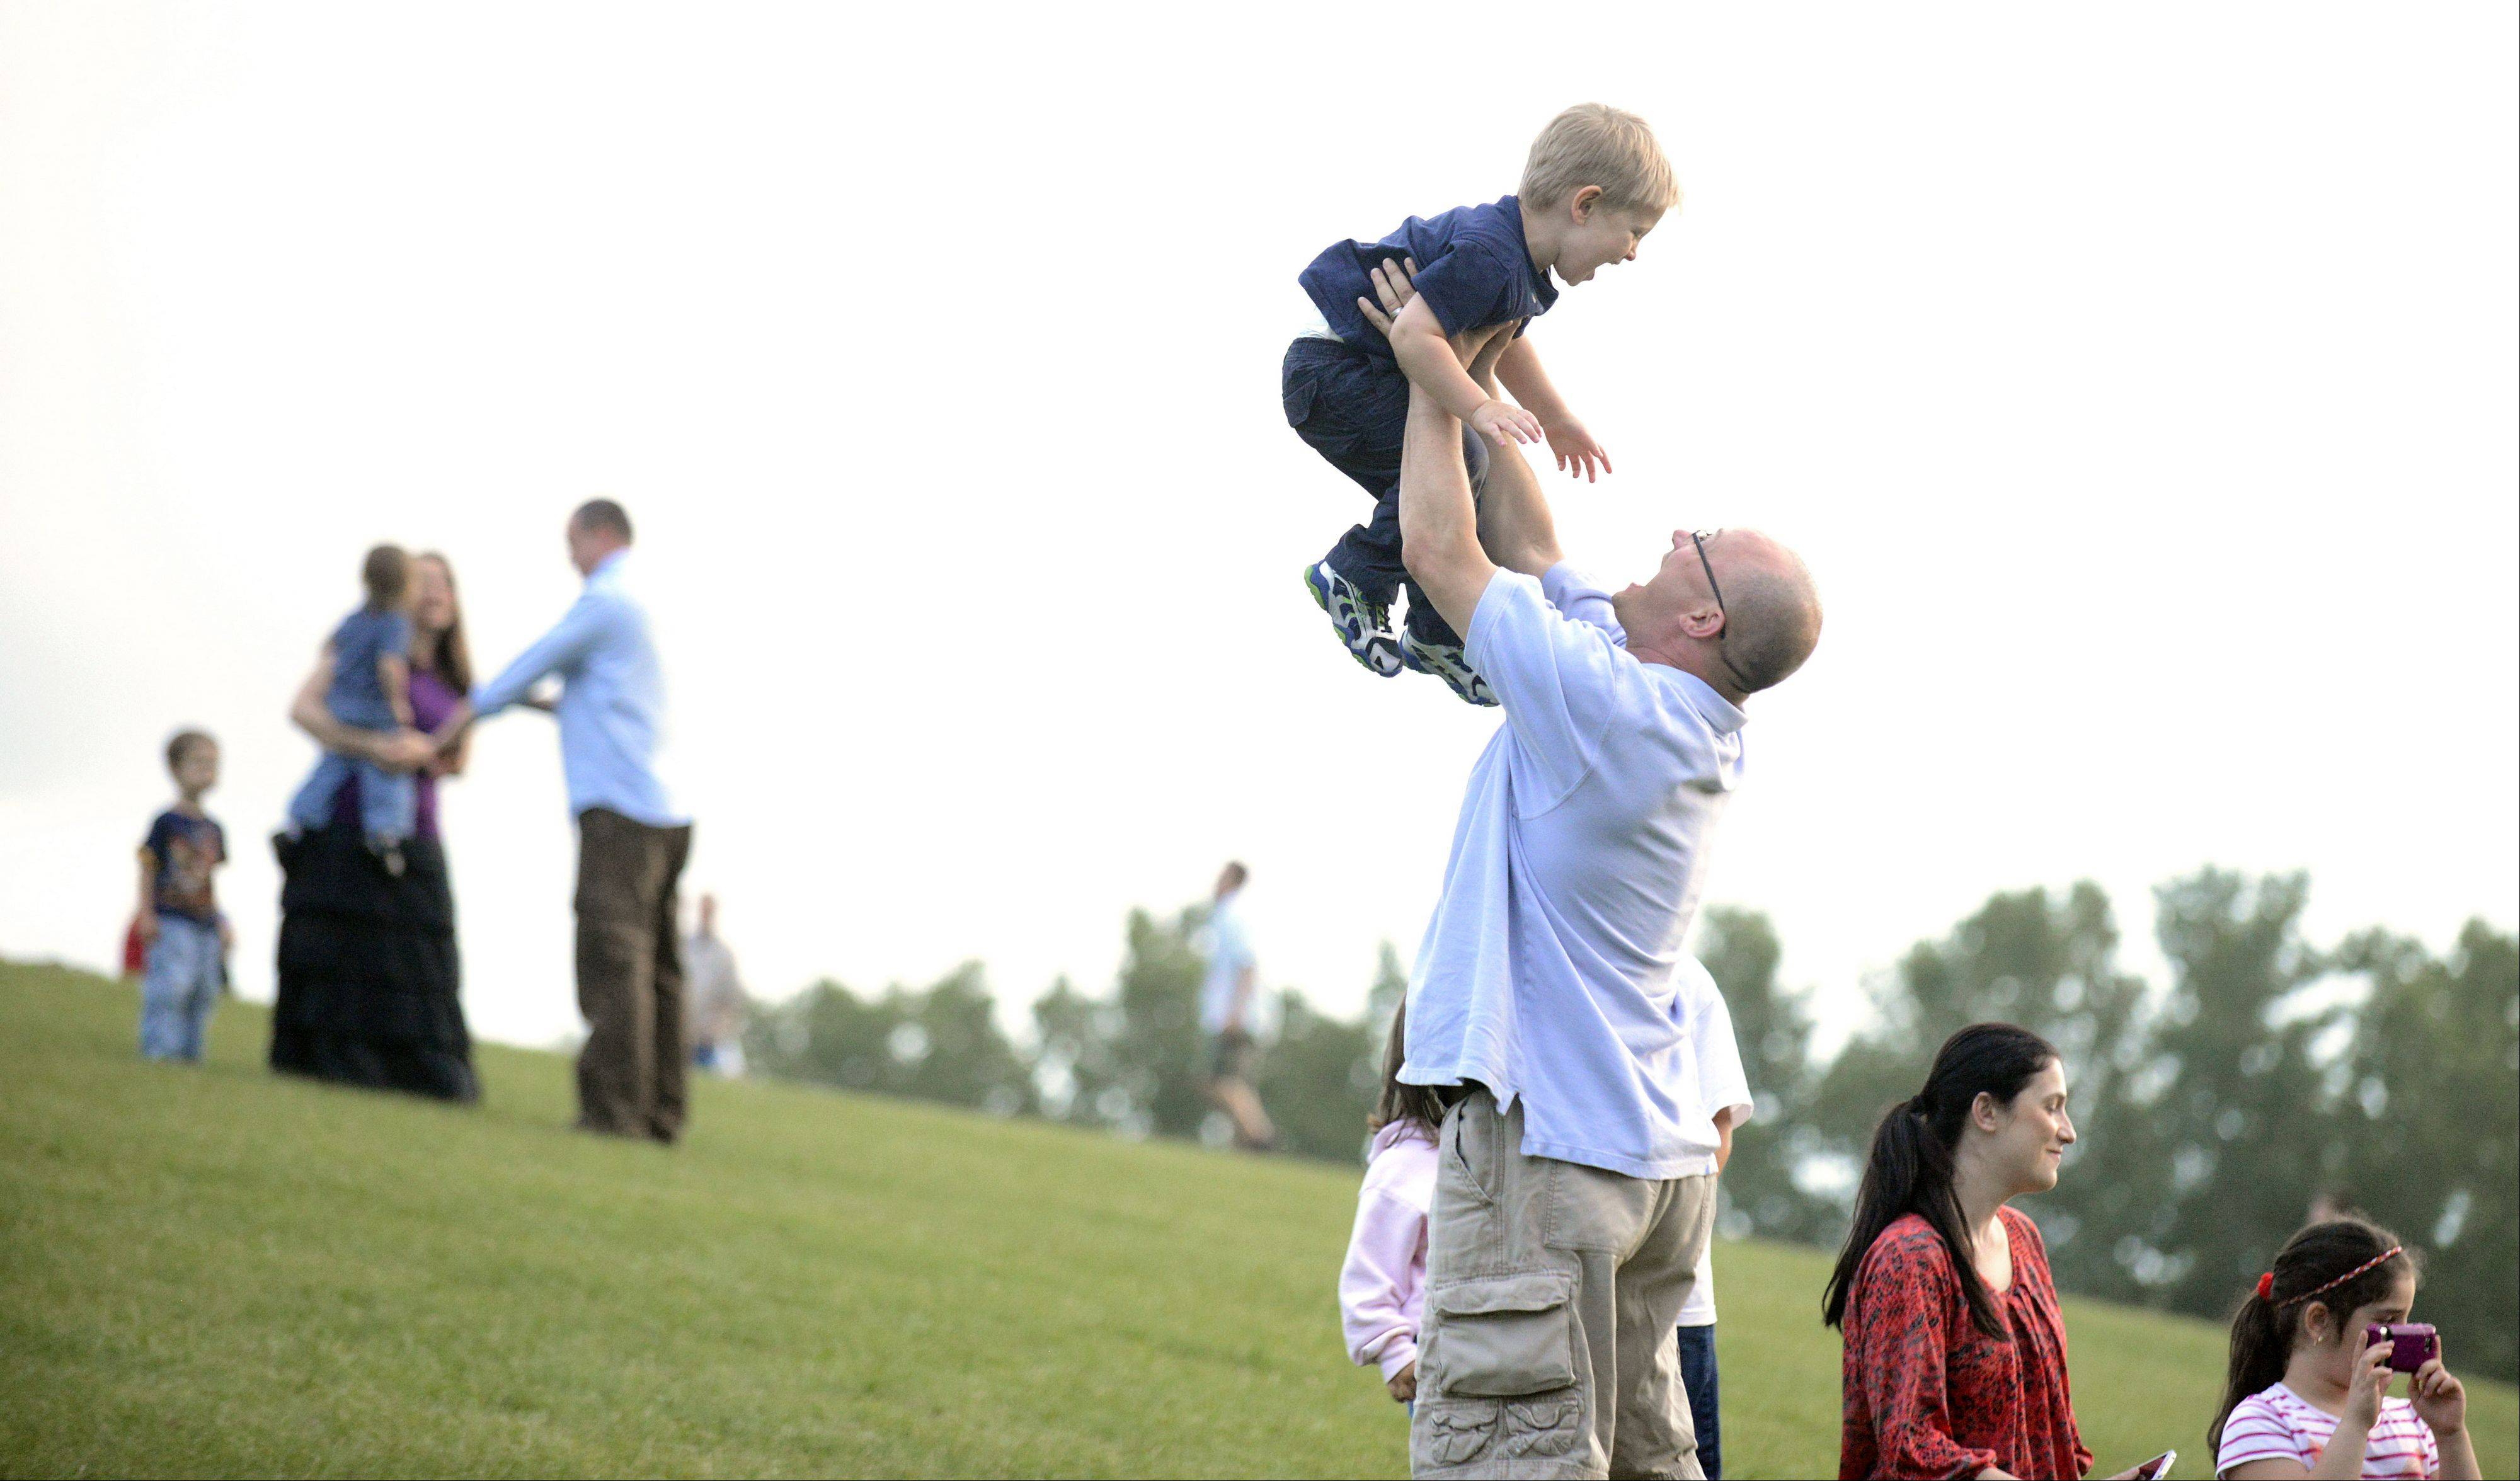 Dan Murphy of Cary lifts his son, Ian, 2, into the air while they listen and dance to the music by rock cover band, Spoken Four, at Cary's Summer Celebration.